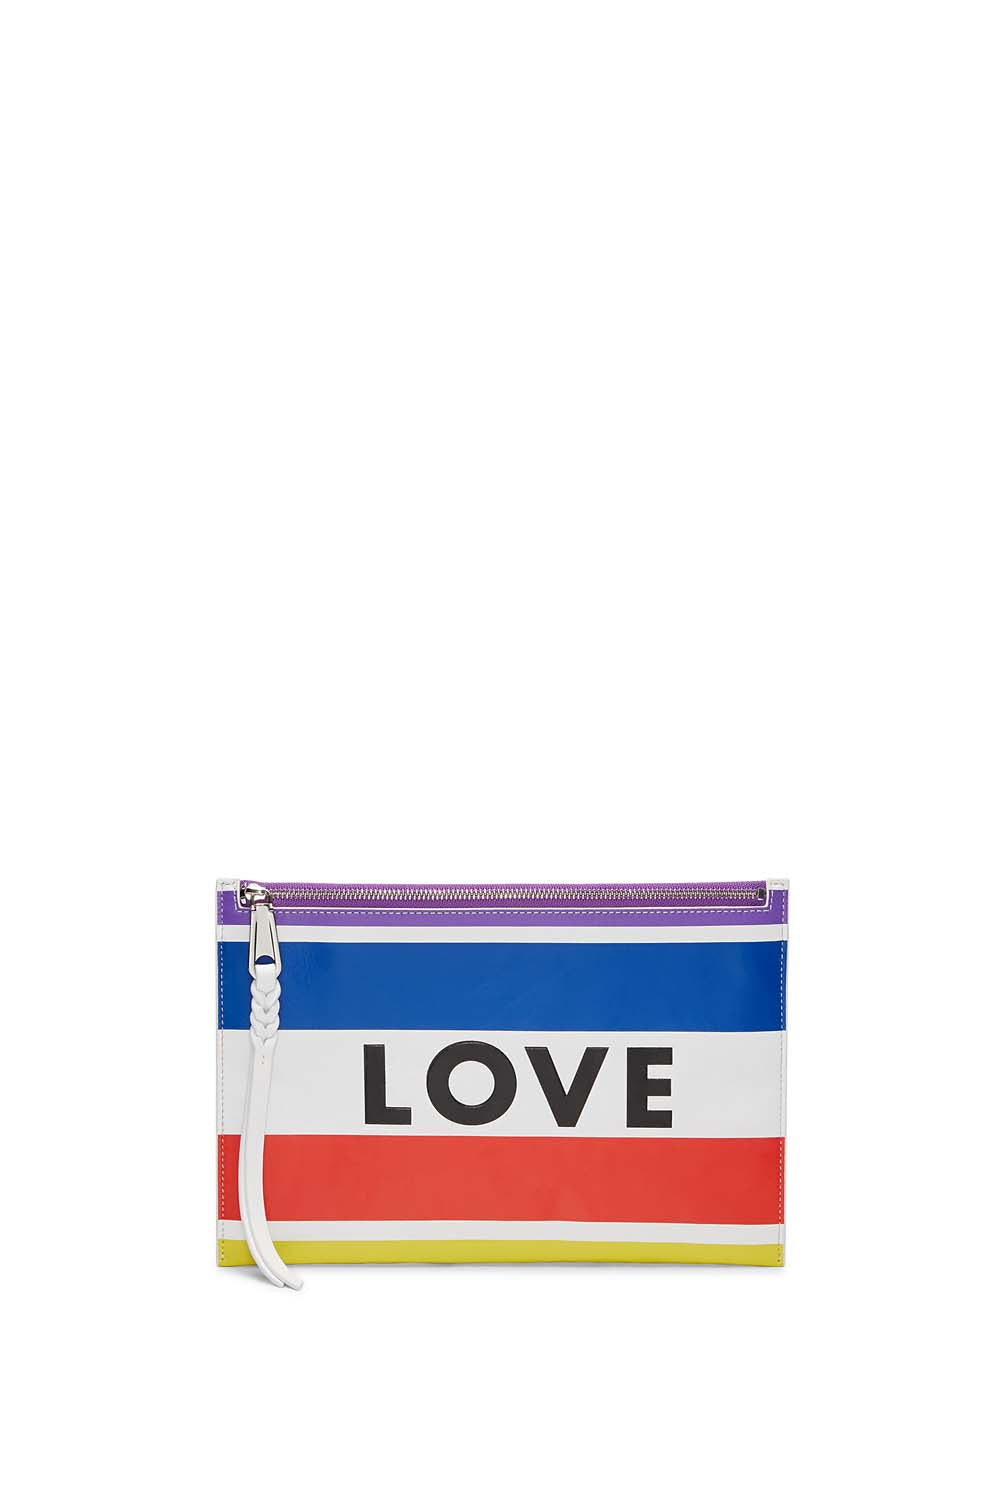 Medium Zip Pouch - Love